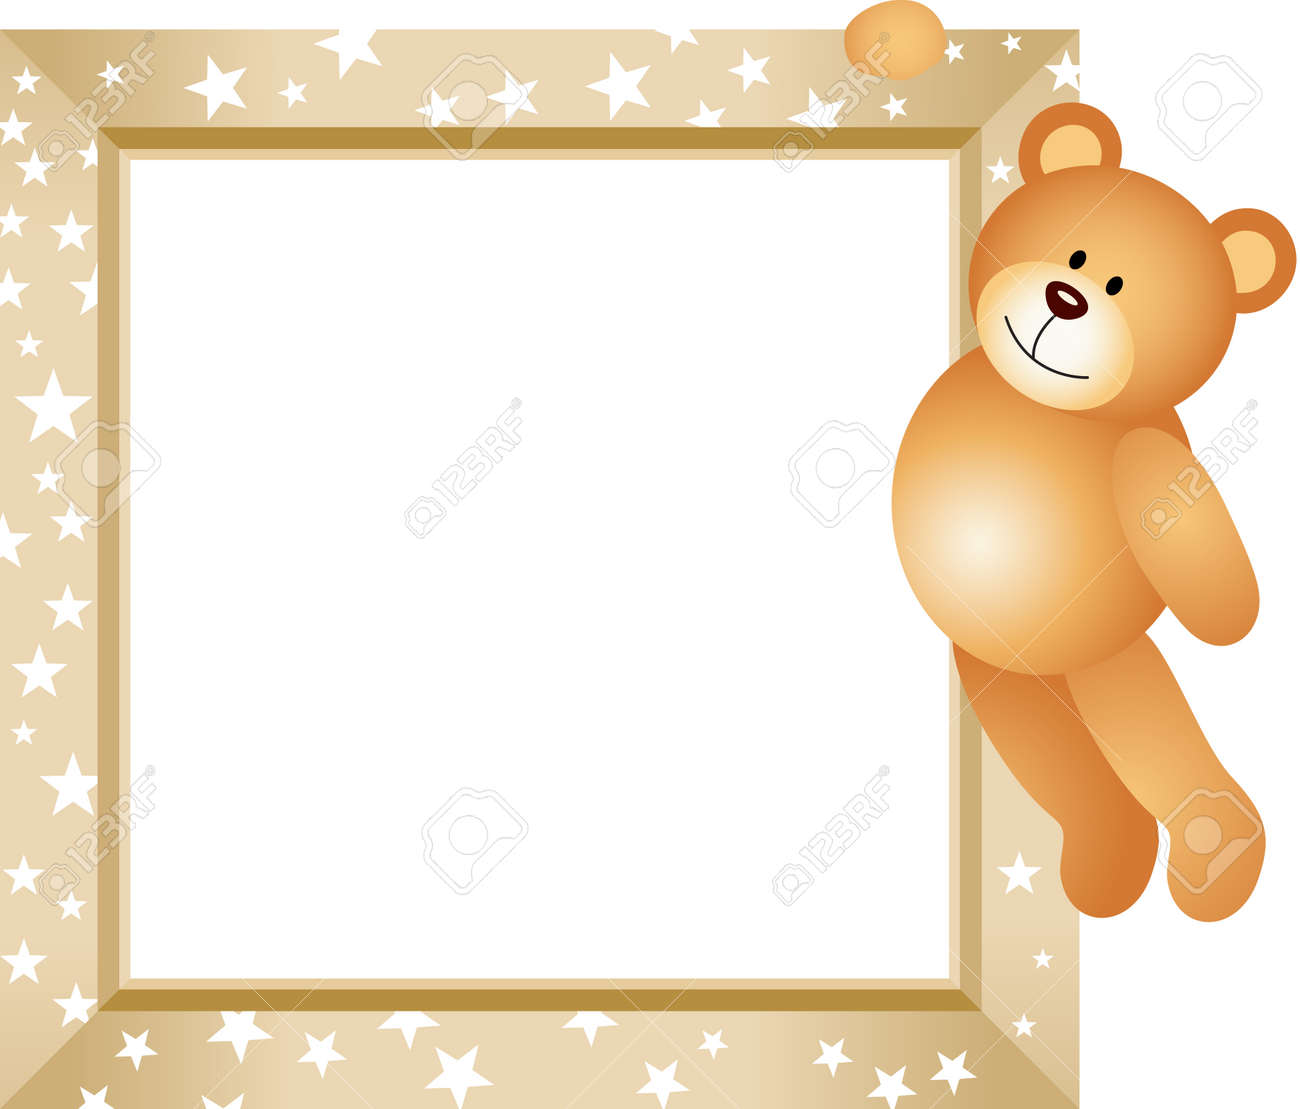 Teddy Bear Hanging In The Frame Royalty Free Cliparts, Vectors, And ...